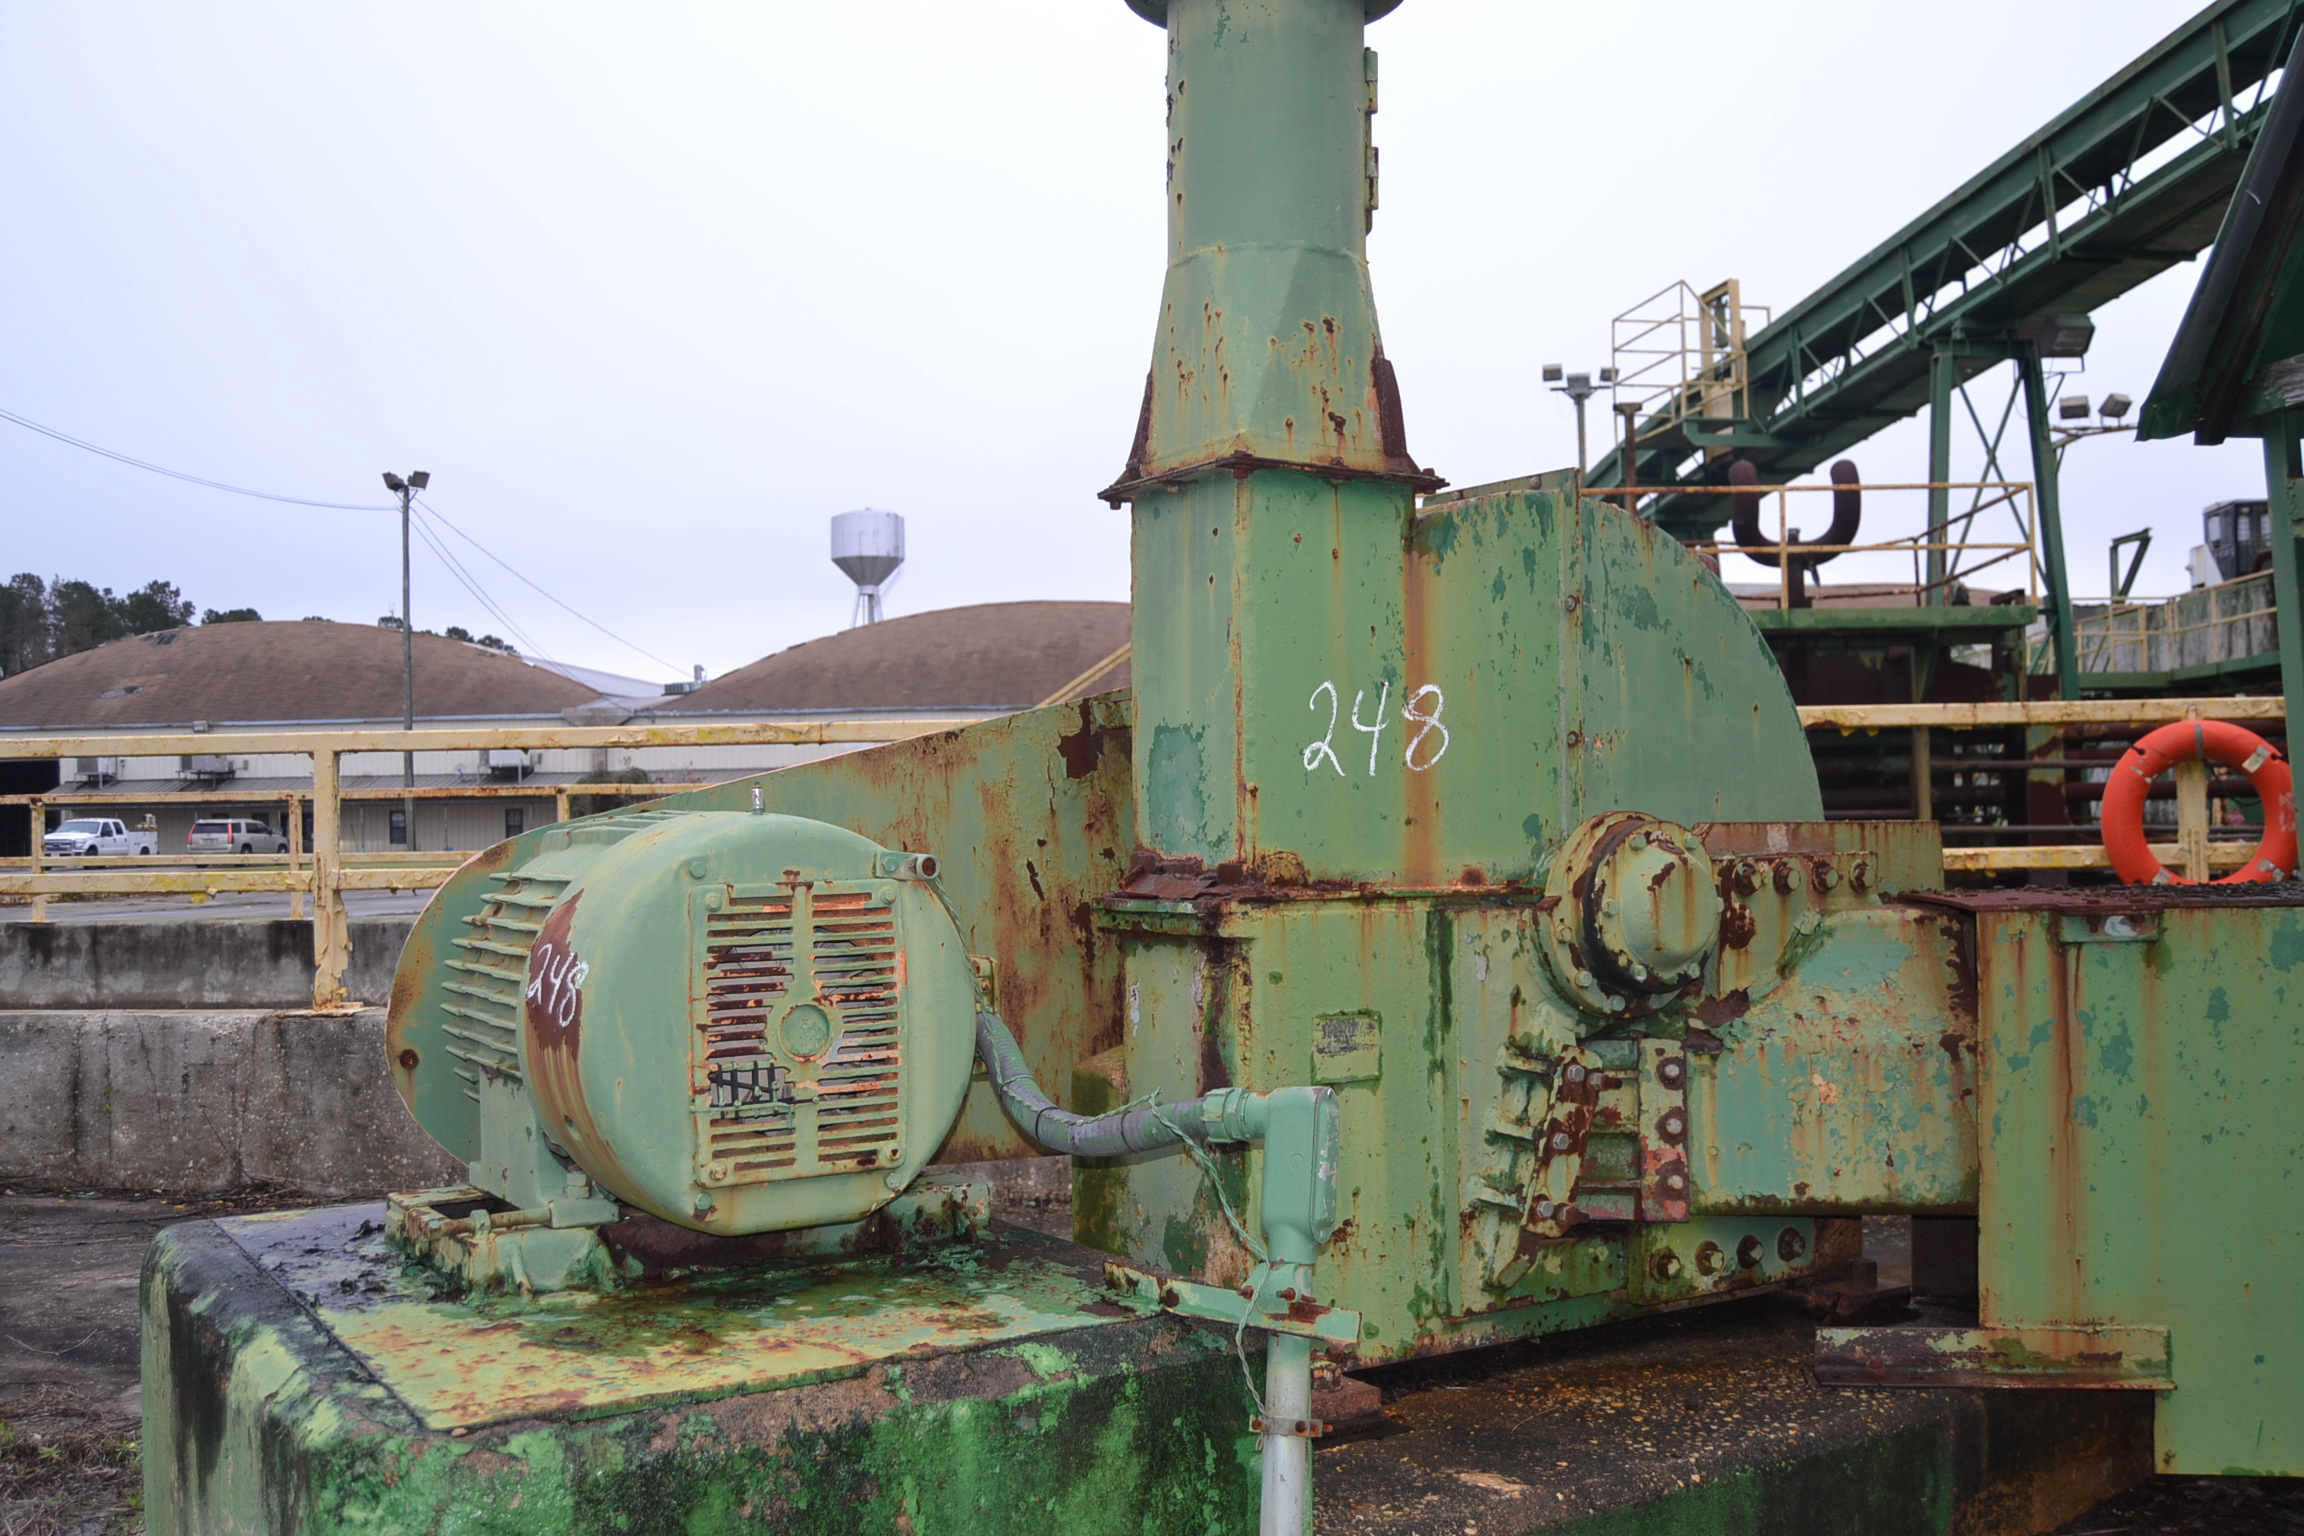 "Lot 248 - CHIP MASTER 48"" 6 KNIFE CHIPPER W/ HORIZONTAL FEED W/ TOP DISCHARGE W/ PIPE TO CYCLONE W/ 5' X 5'"